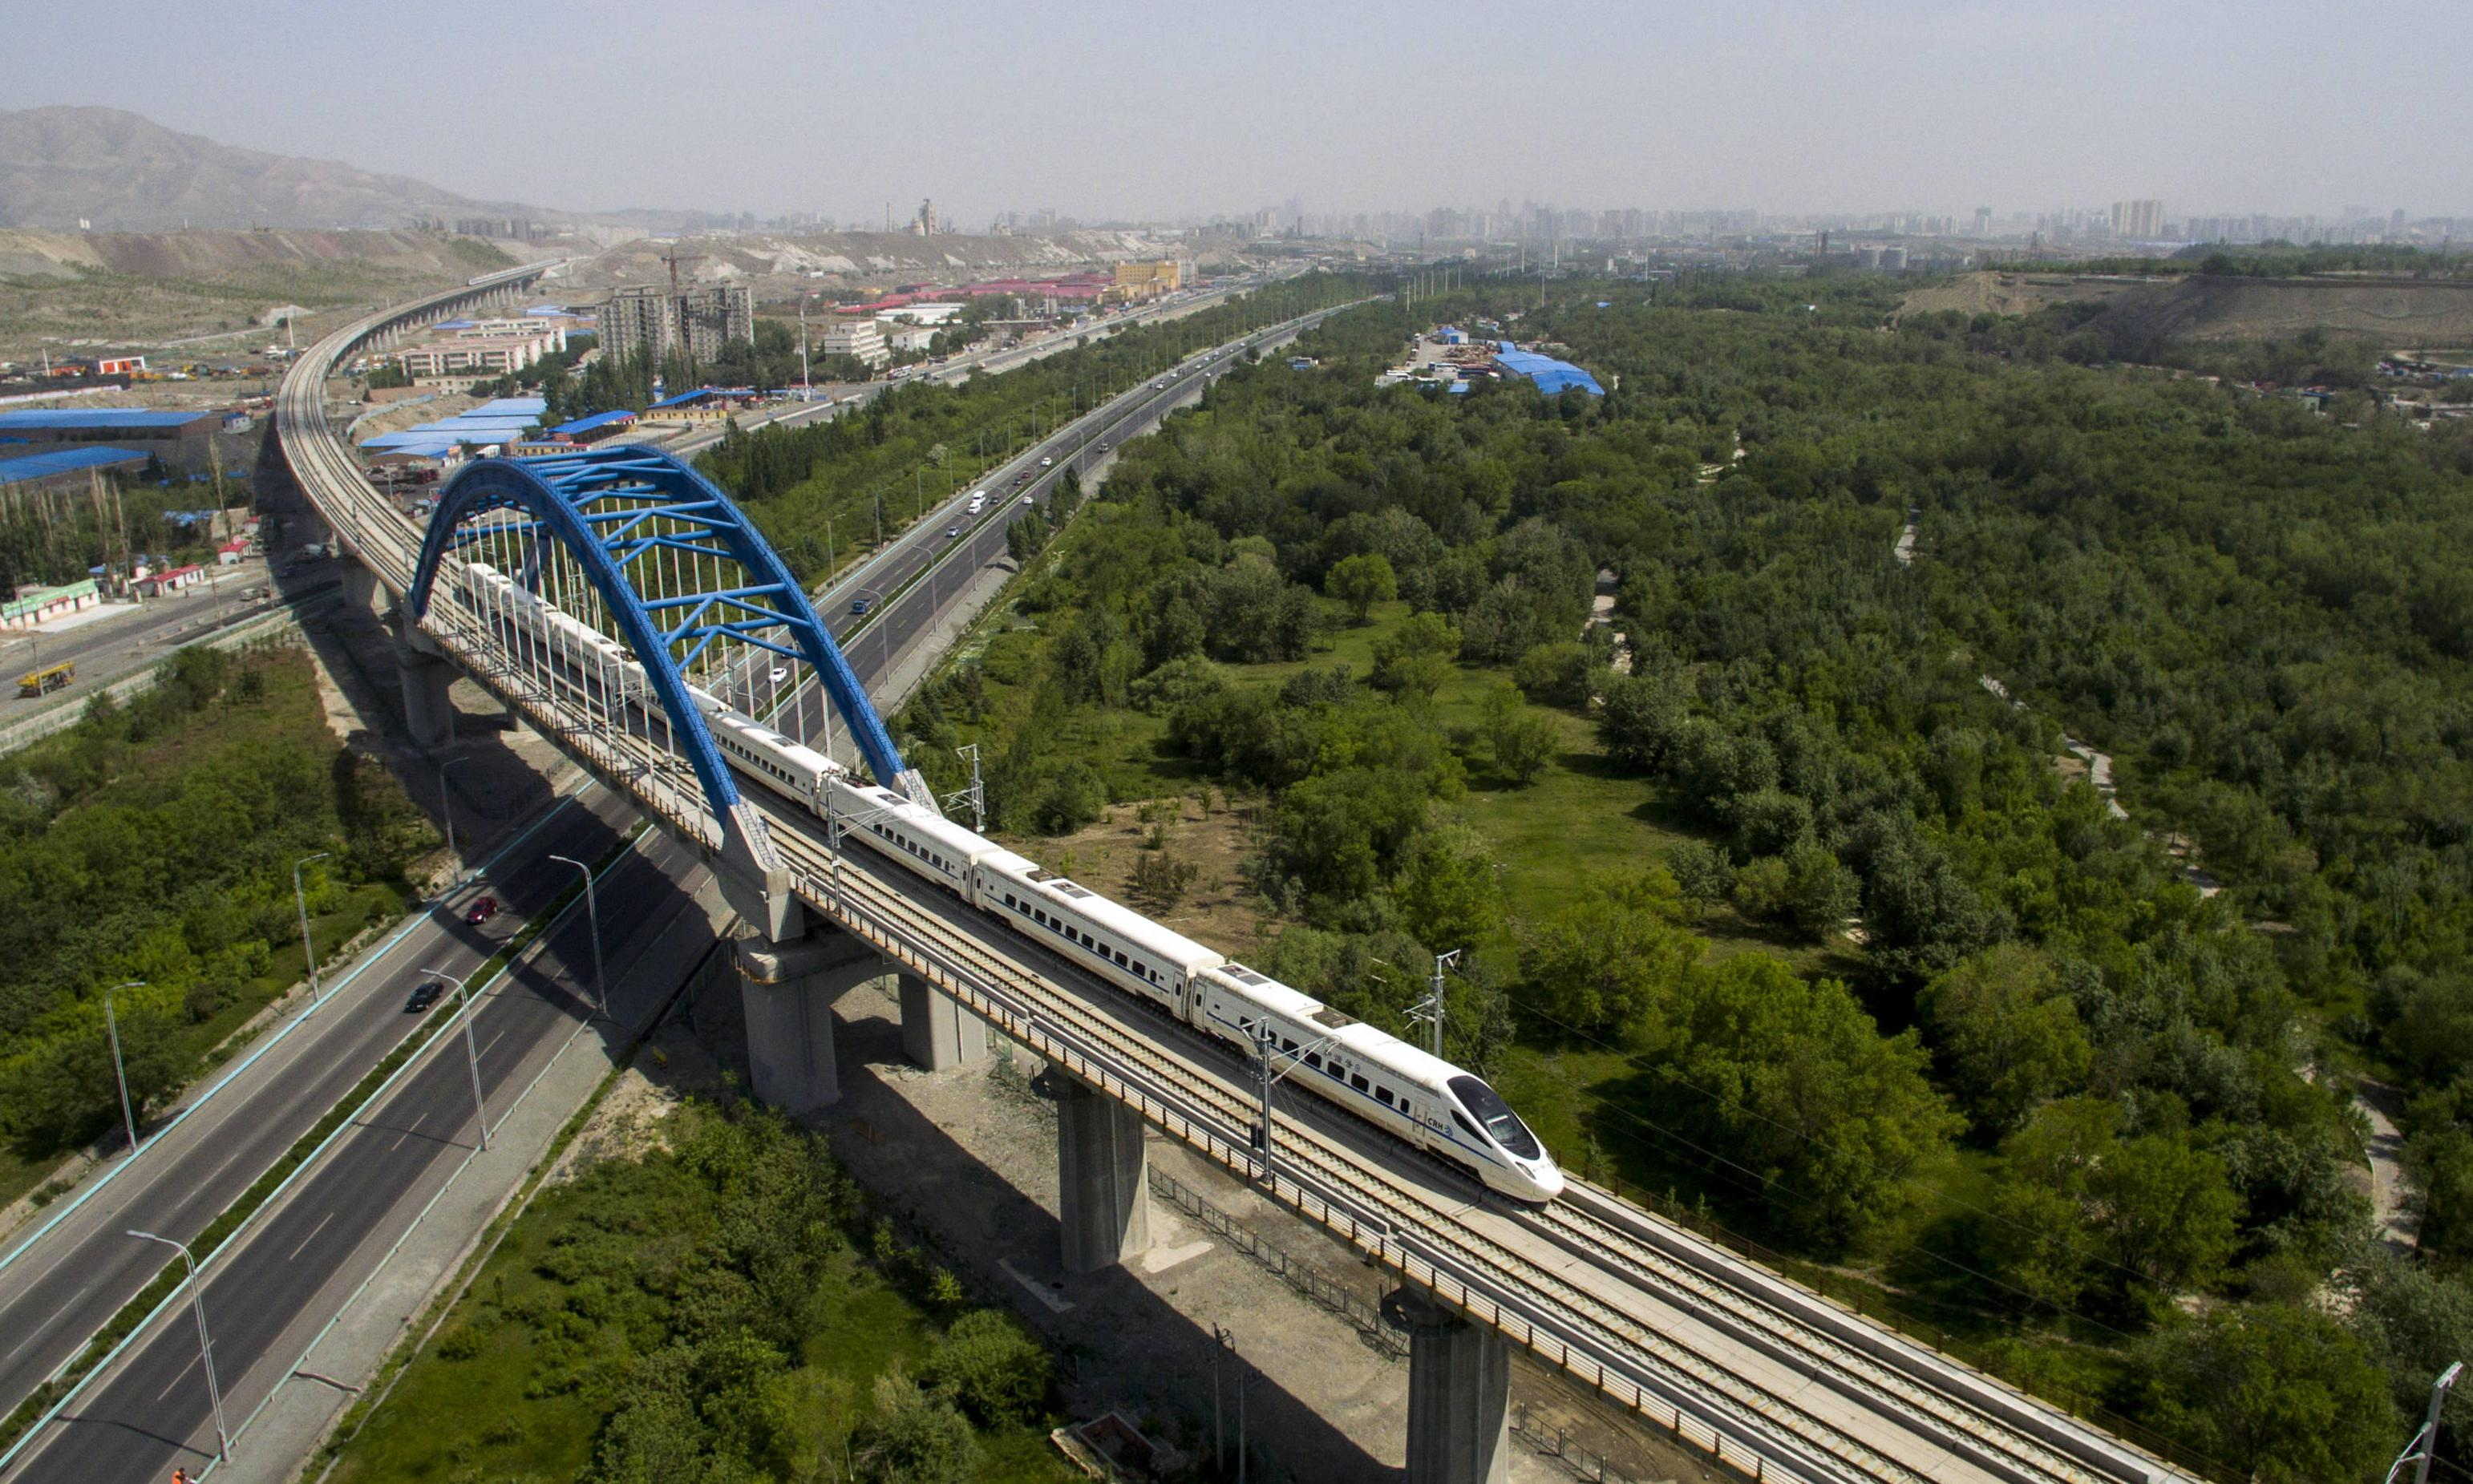 How to book and travel by high-speed train around China